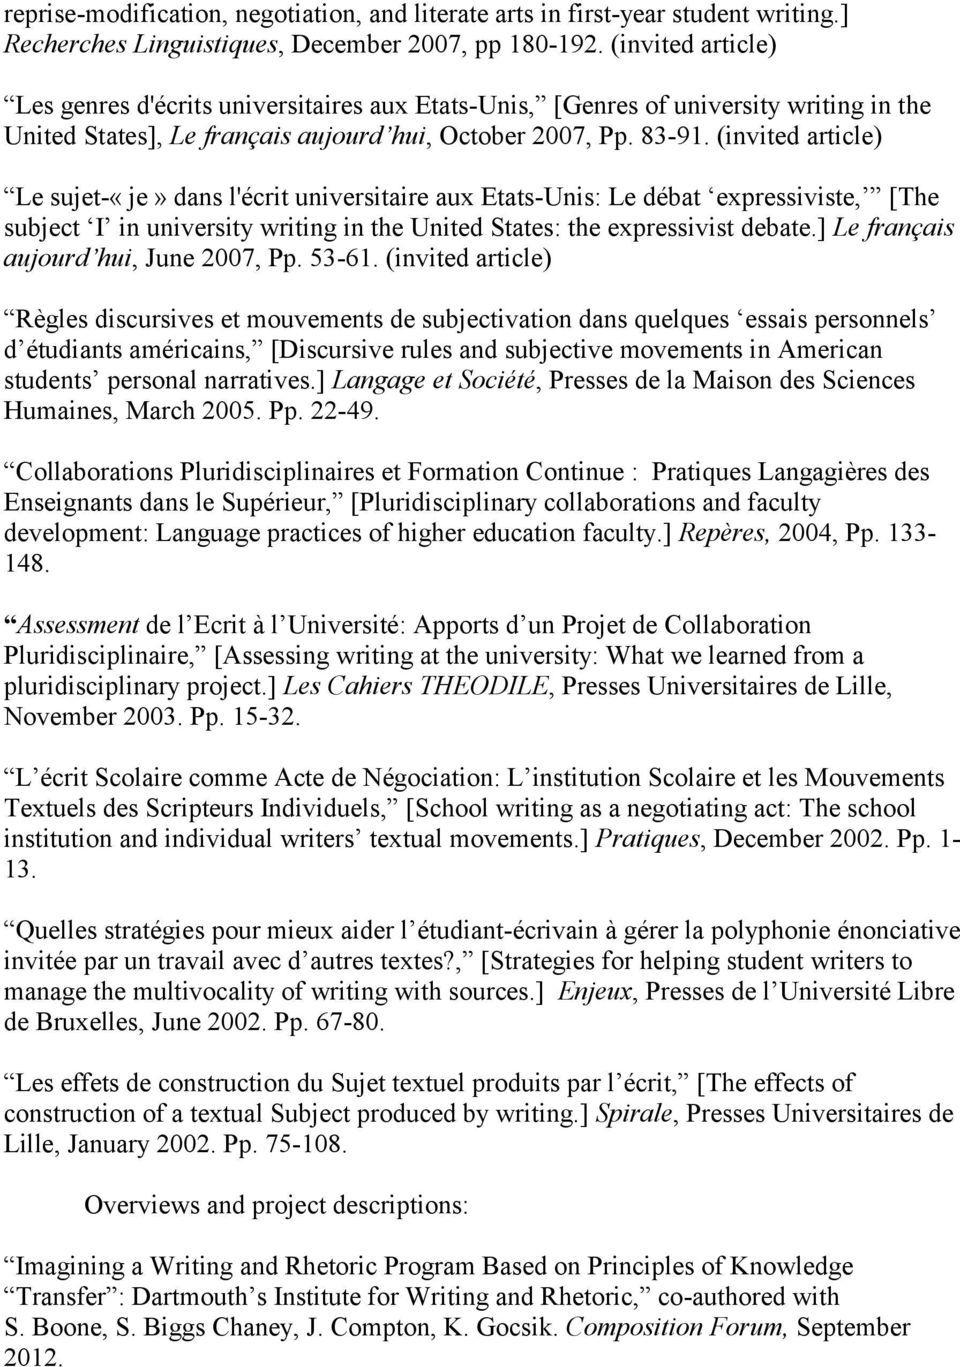 (invited article) Le sujet-«je» dans l'écrit universitaire aux Etats-Unis: Le débat expressiviste, [The subject I in university writing in the United States: the expressivist debate.